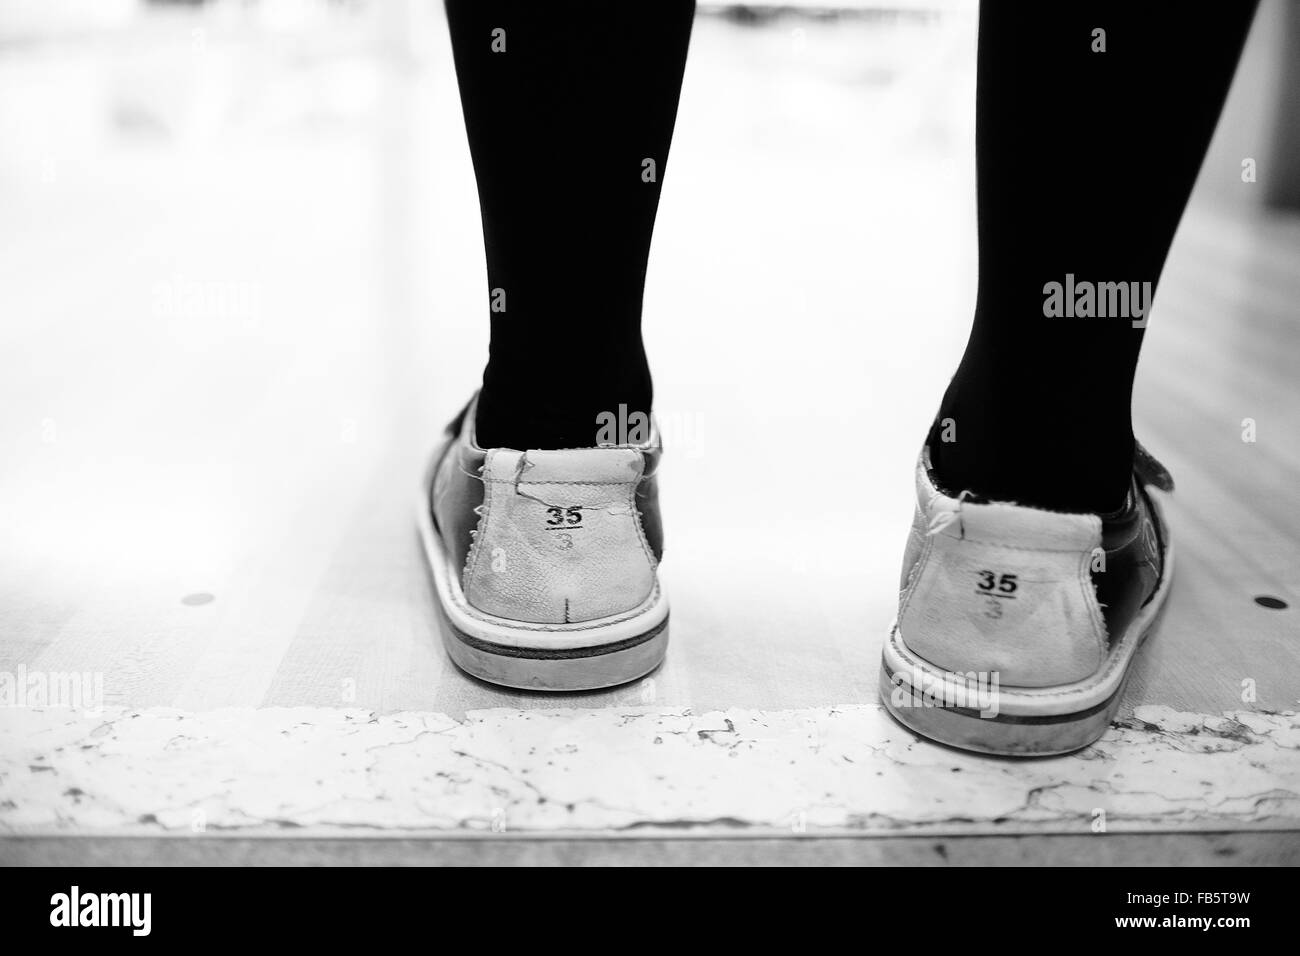 Girl's Feet In Bowling Shoes In A Bowling Alley. Size Euro 35, Uk ...